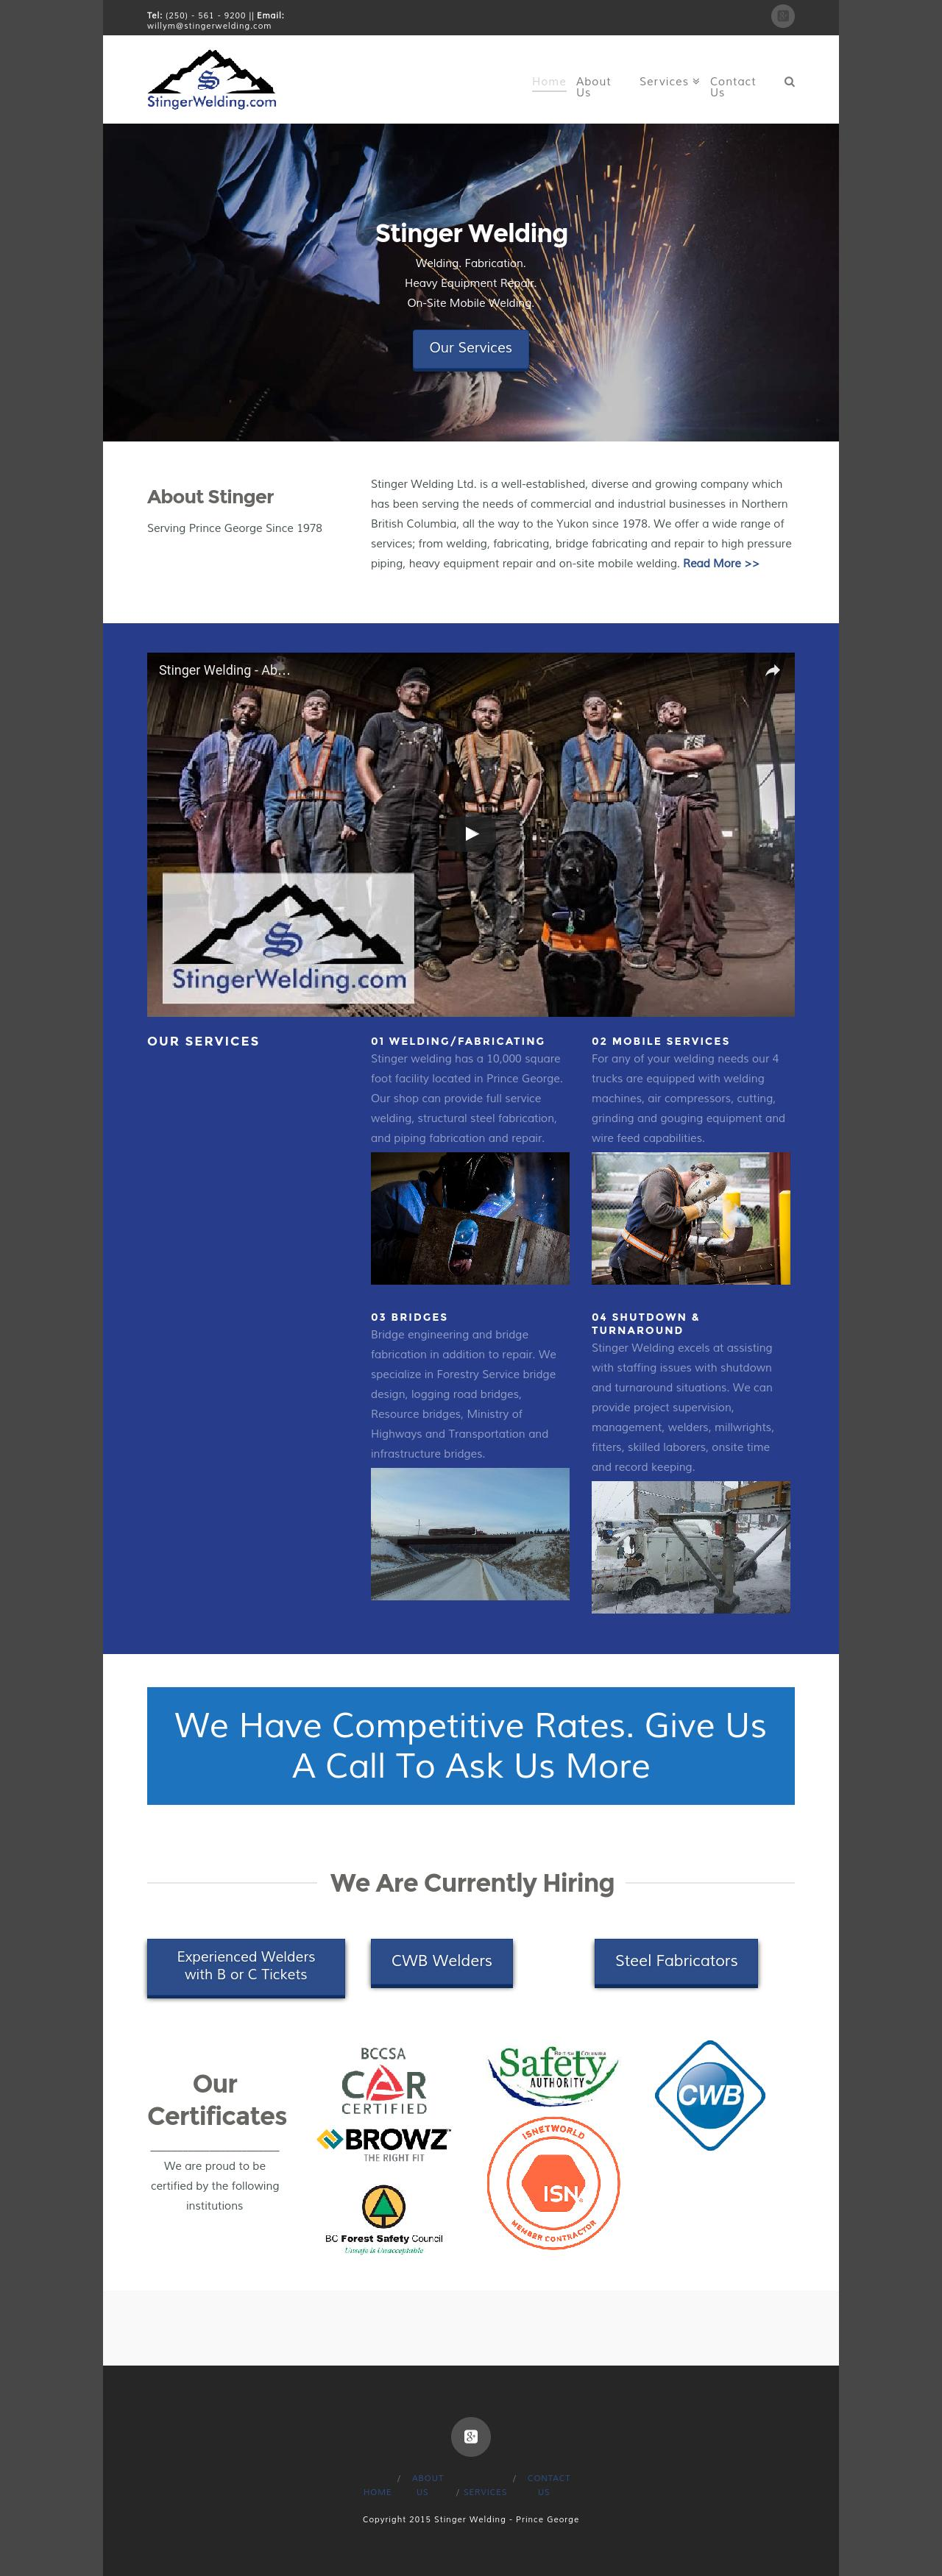 Stinger Welding Home page screenshot